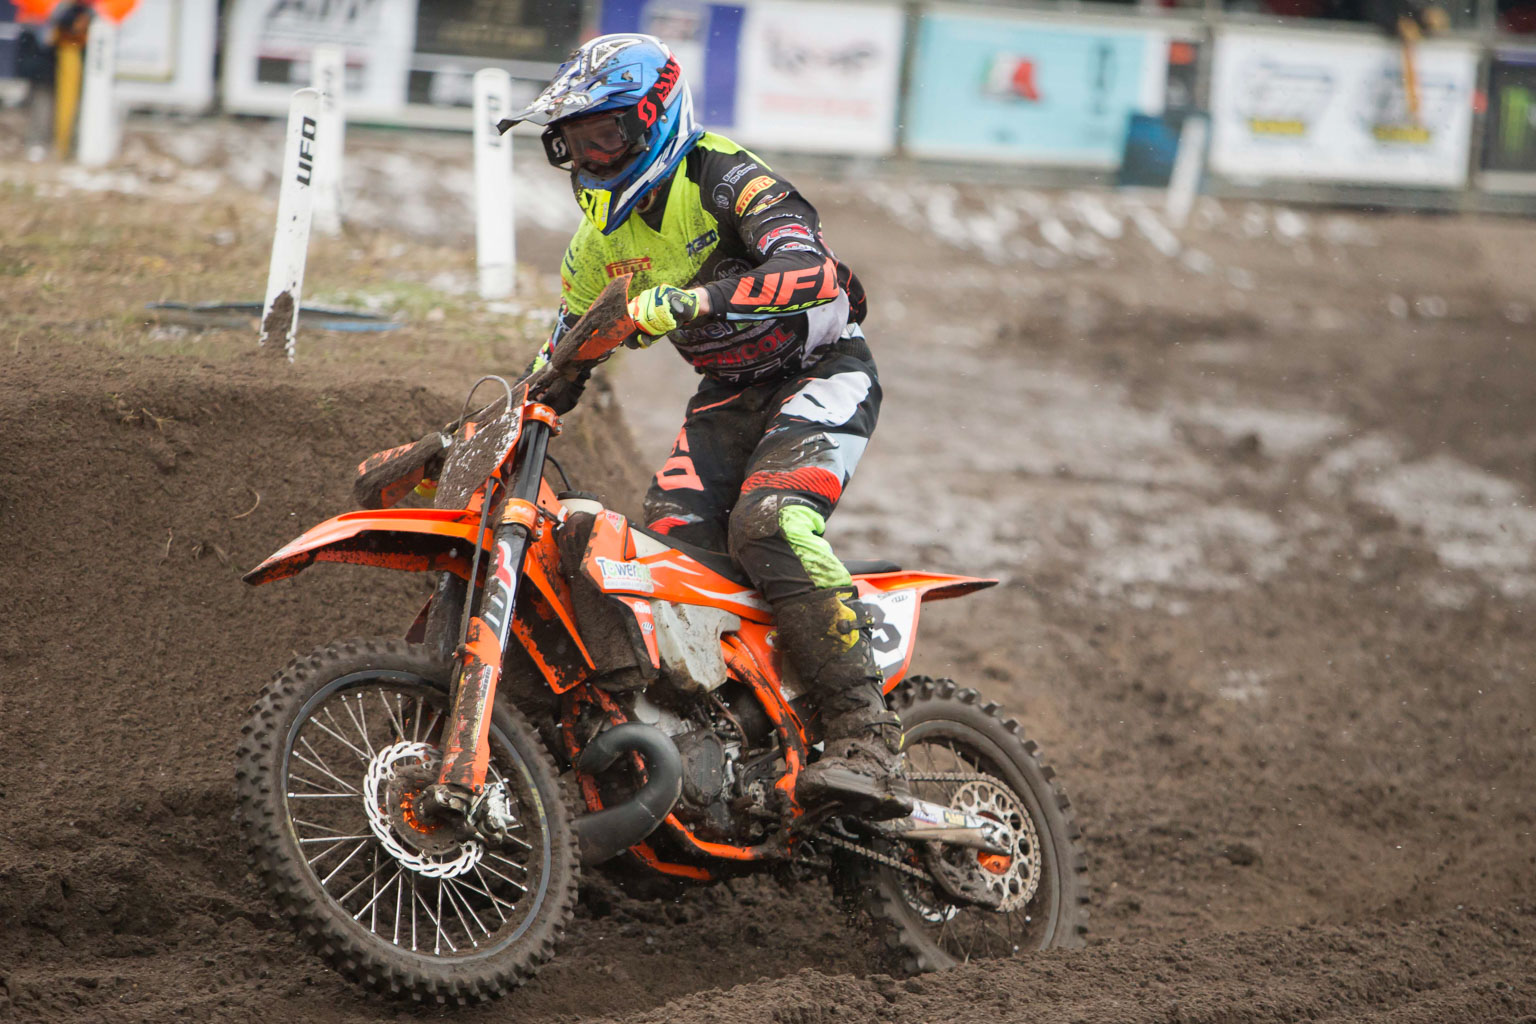 Smets took a double win